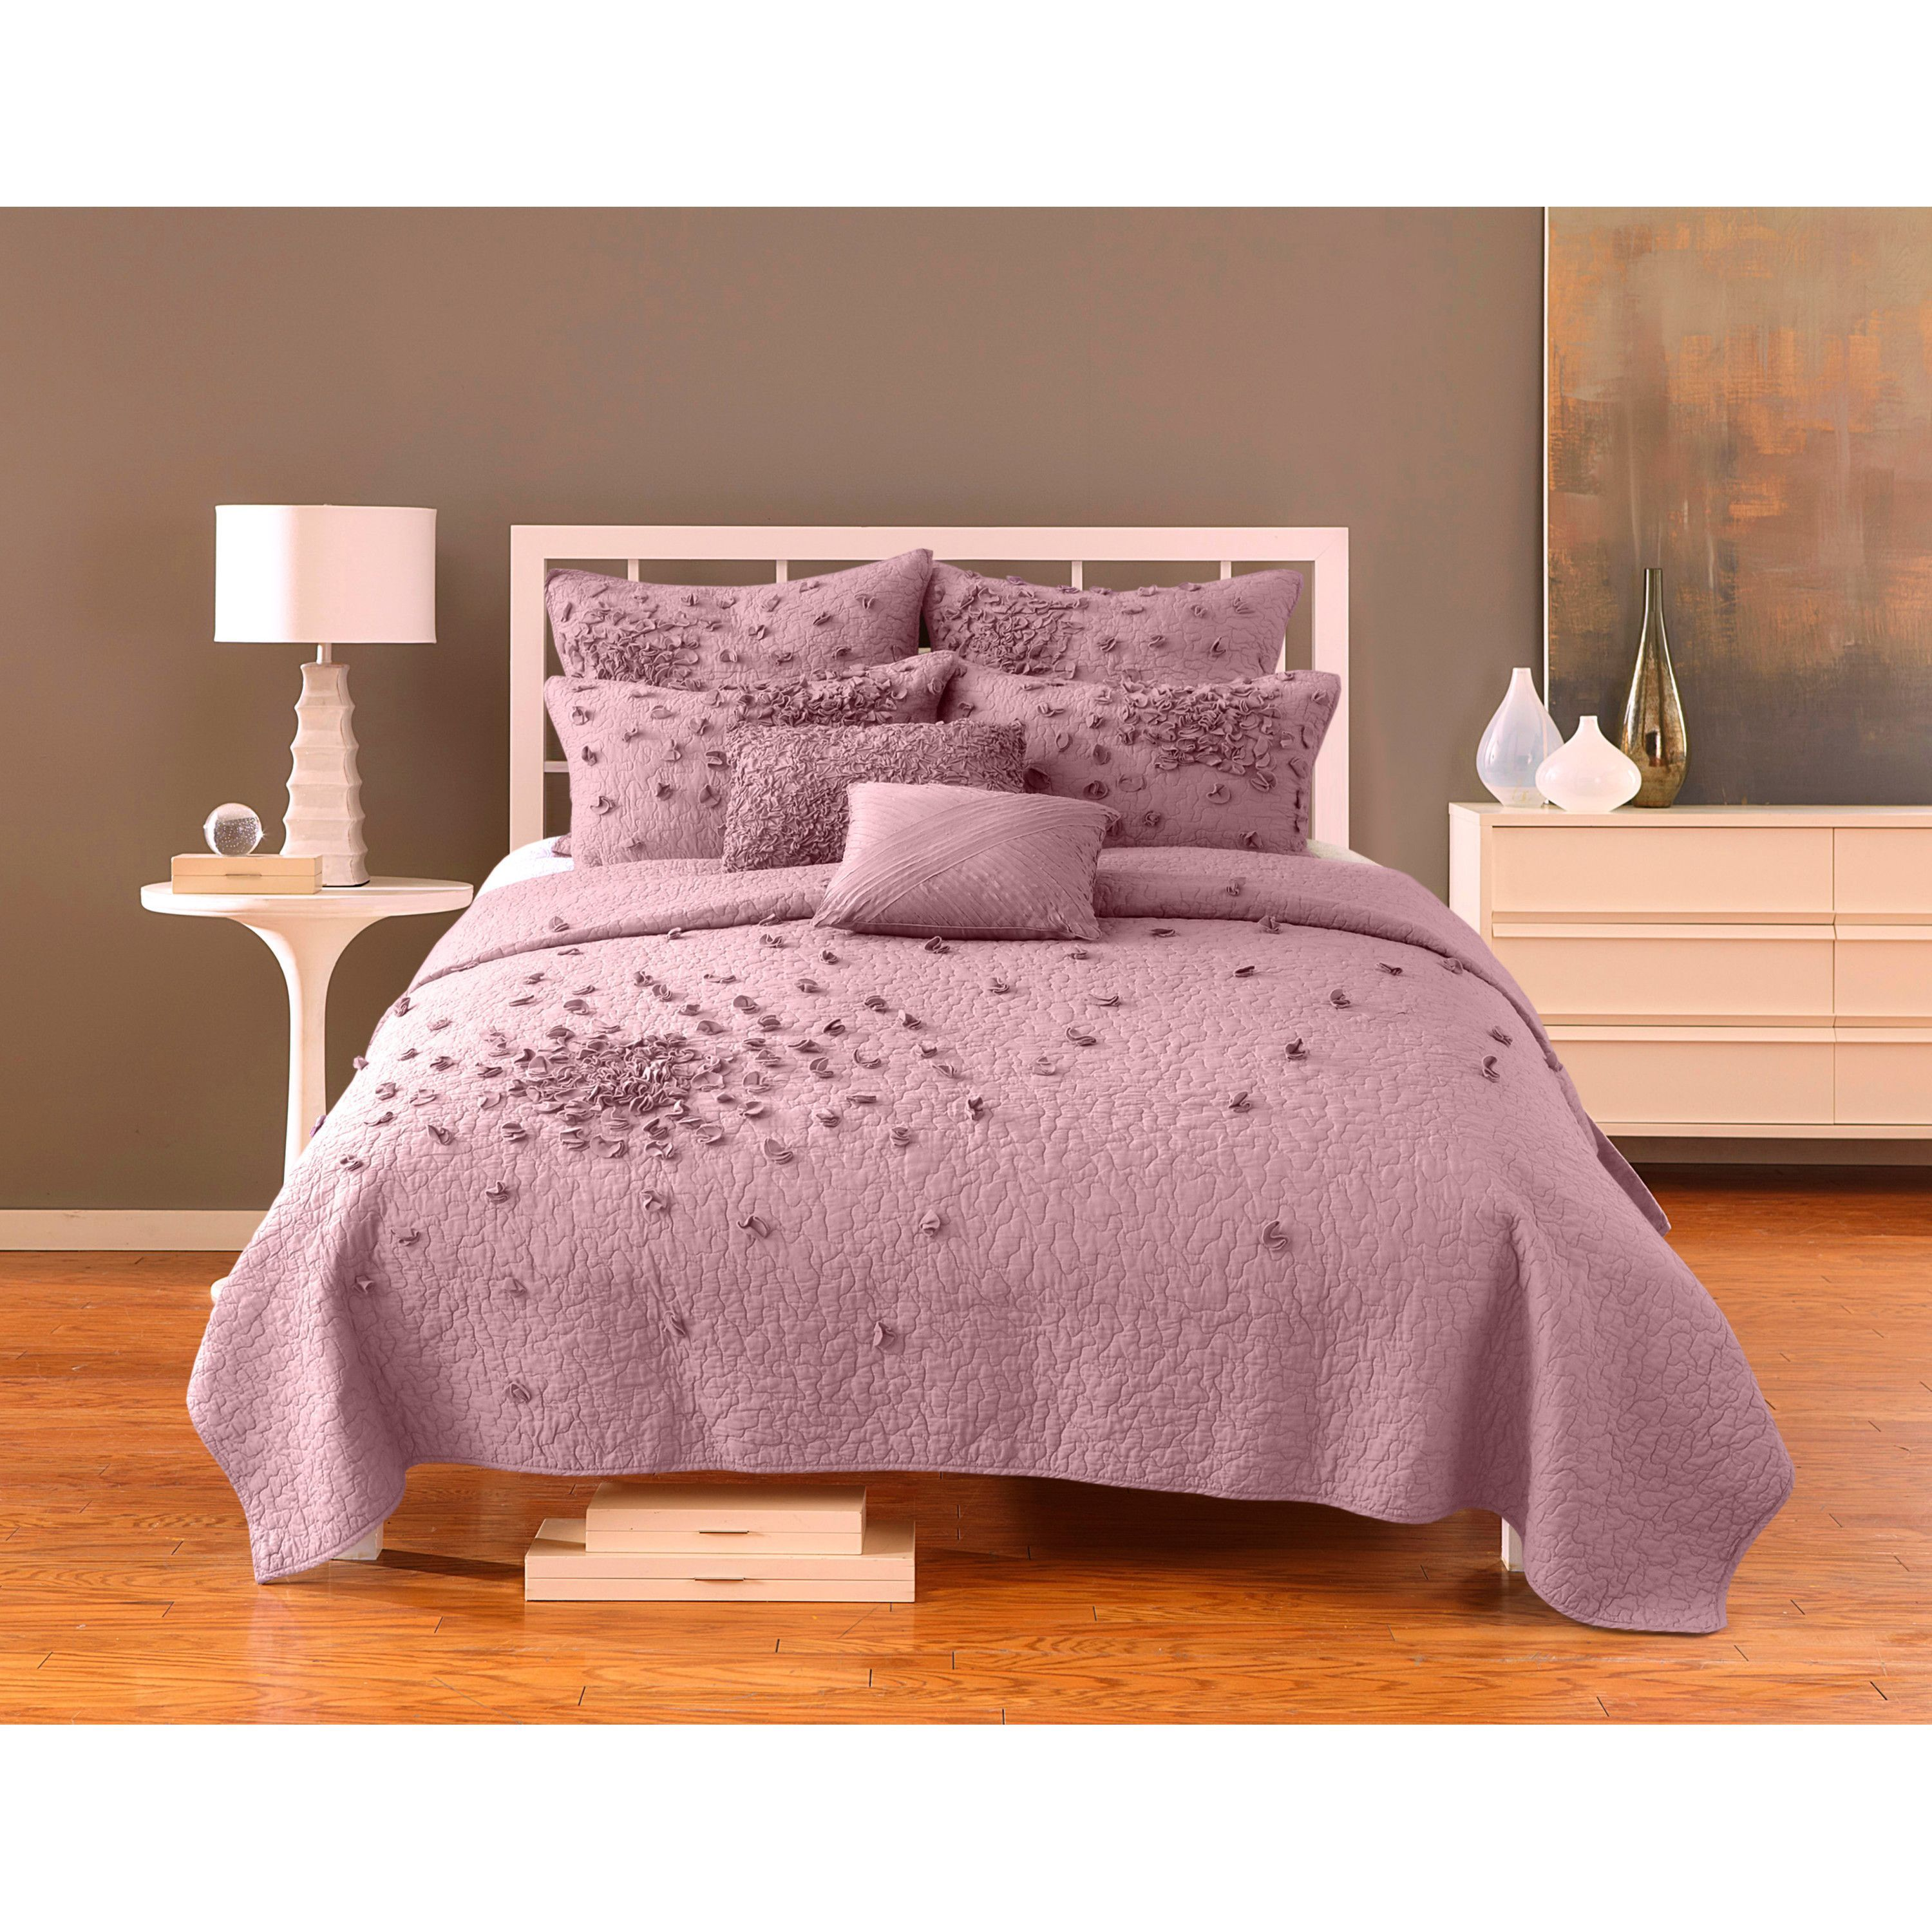 coverlet lavender dark black quilt bedspreads quilts and plum size colored purple twin yellow light full bedding teal comforters violet white comforter set coverlets pink sets of